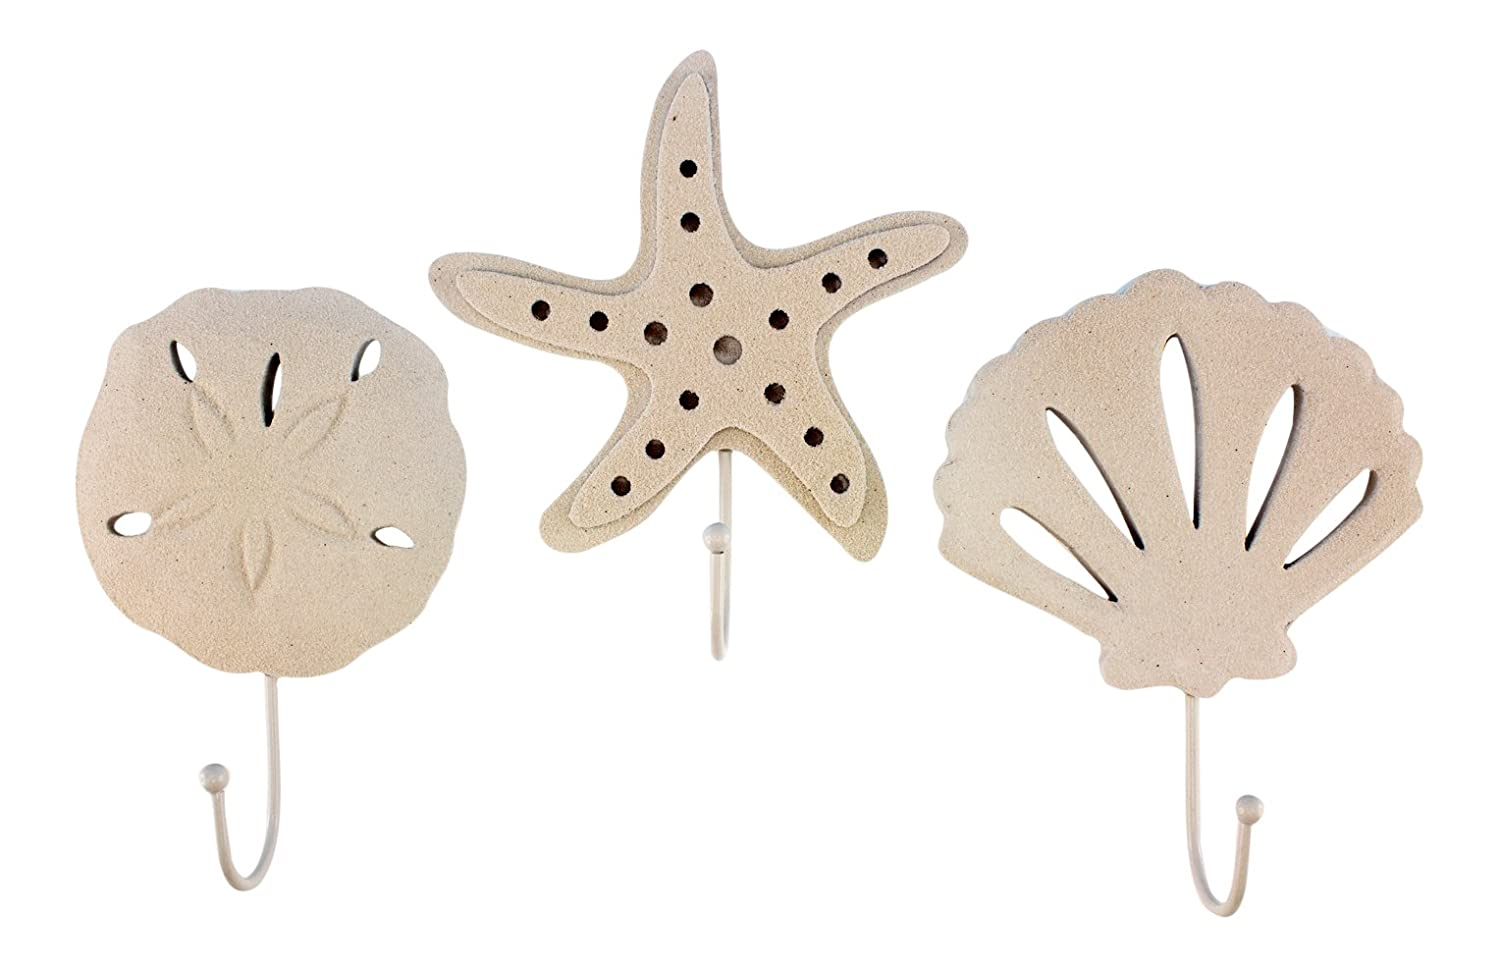 3 Wood Sand Finish Wall Hooks - 1 Scallop Shell, 1 Starfish and 1 Sand Dollar